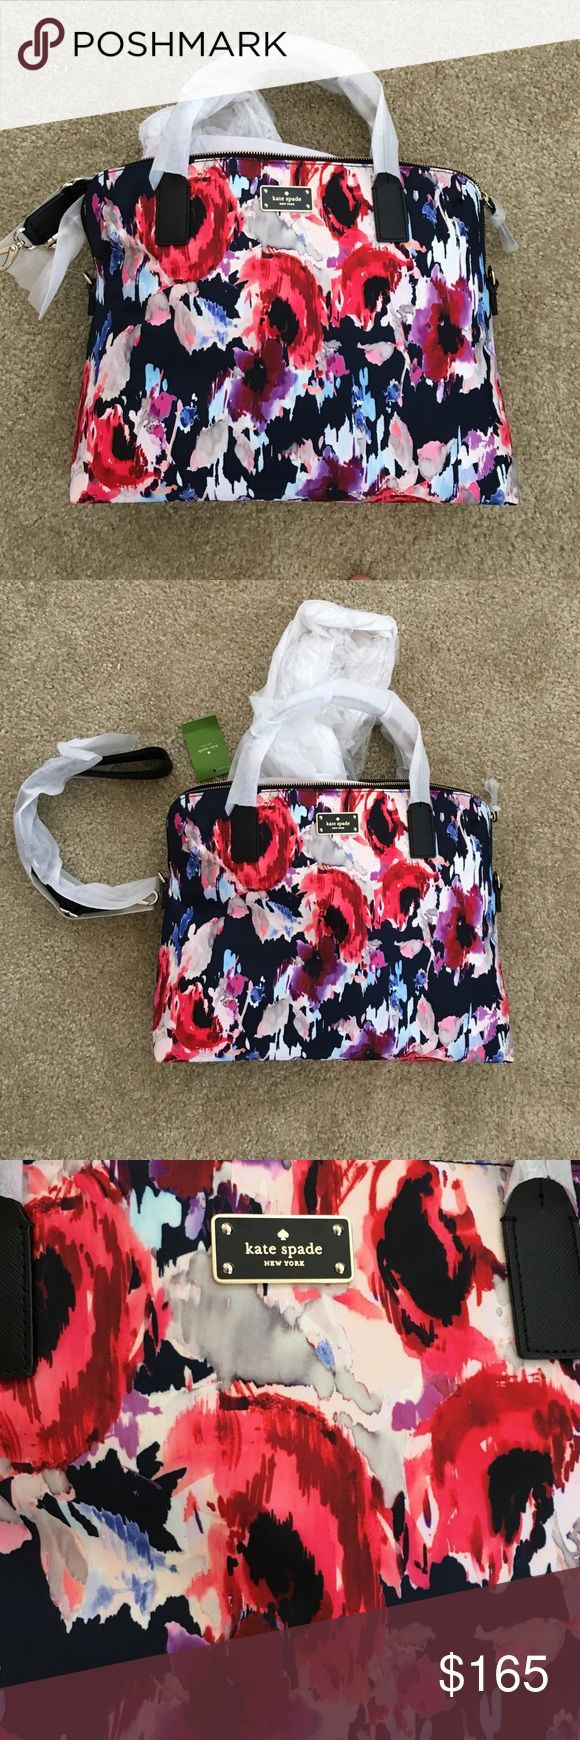 NWT FLORAL KATE SPADE LAPTOP/COMMUTER/WORK BAG This adorable laptop bag is brand new and so comfy on your shoulder. A great way to get that computer out of your purse. 🤗 Fits up to a 15 inch laptop and has a ton of storage for other things too! kate spade Bags Laptop Bags